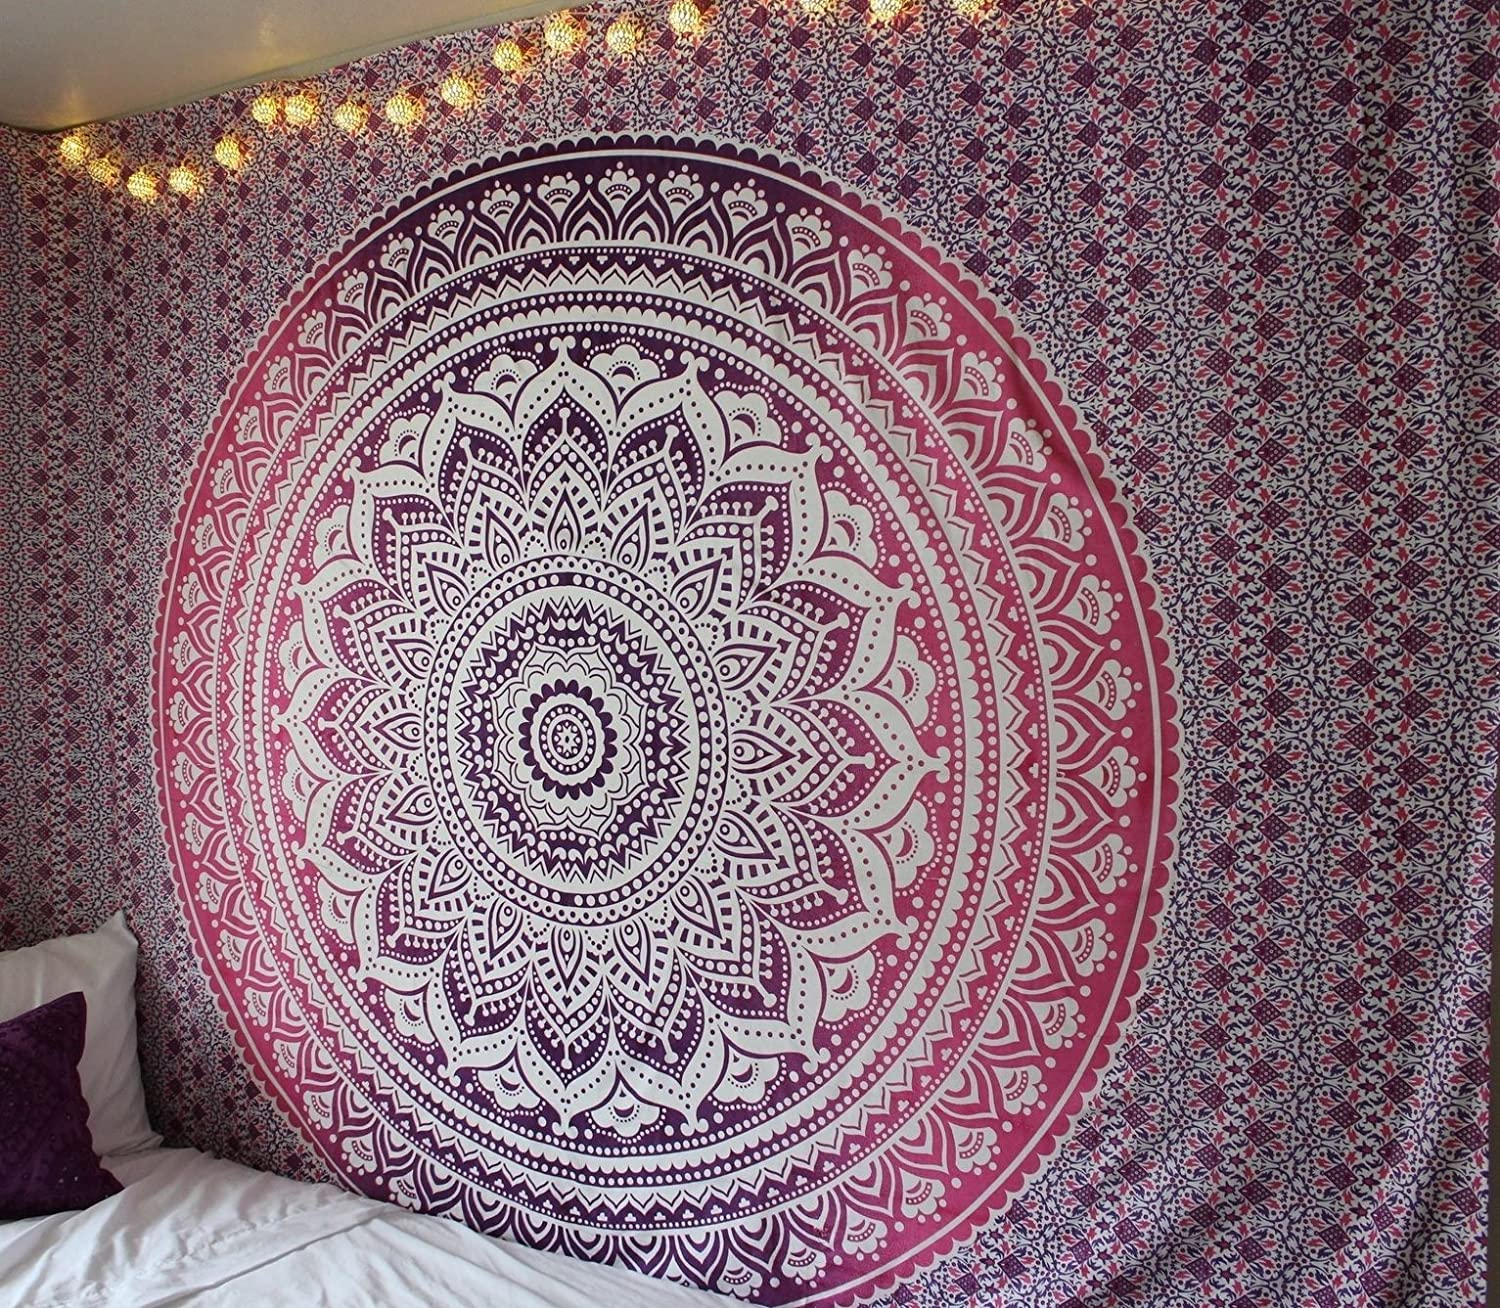 RSG Venture Tapestry Wall Hanging Hippie Mandala Tapestry College Dorm Tapestry Mandala Tapestry Dorm Decor Indian Hippie Tapestry Bohemian Bedspread Bedding Decor (Twin (54X85 inches Approx), Pink)